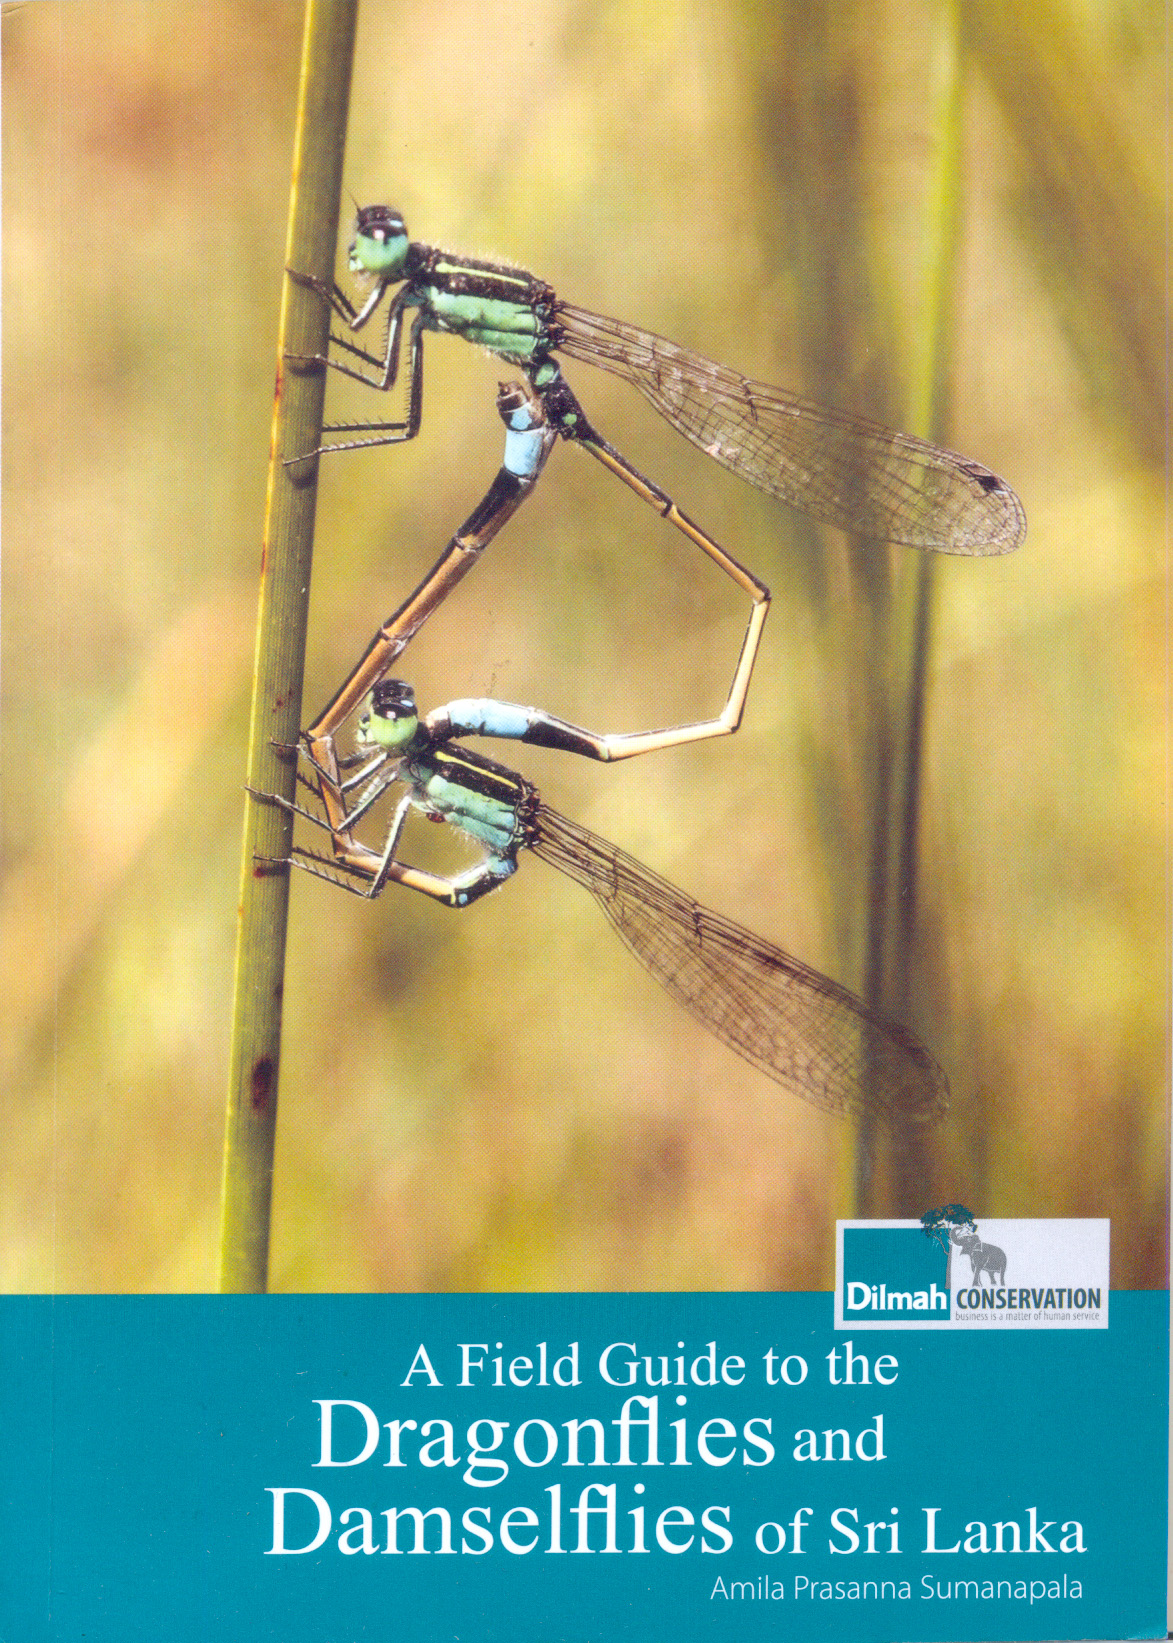 Field Guide to the Dragonflies and Damselflies of Sri Lanka